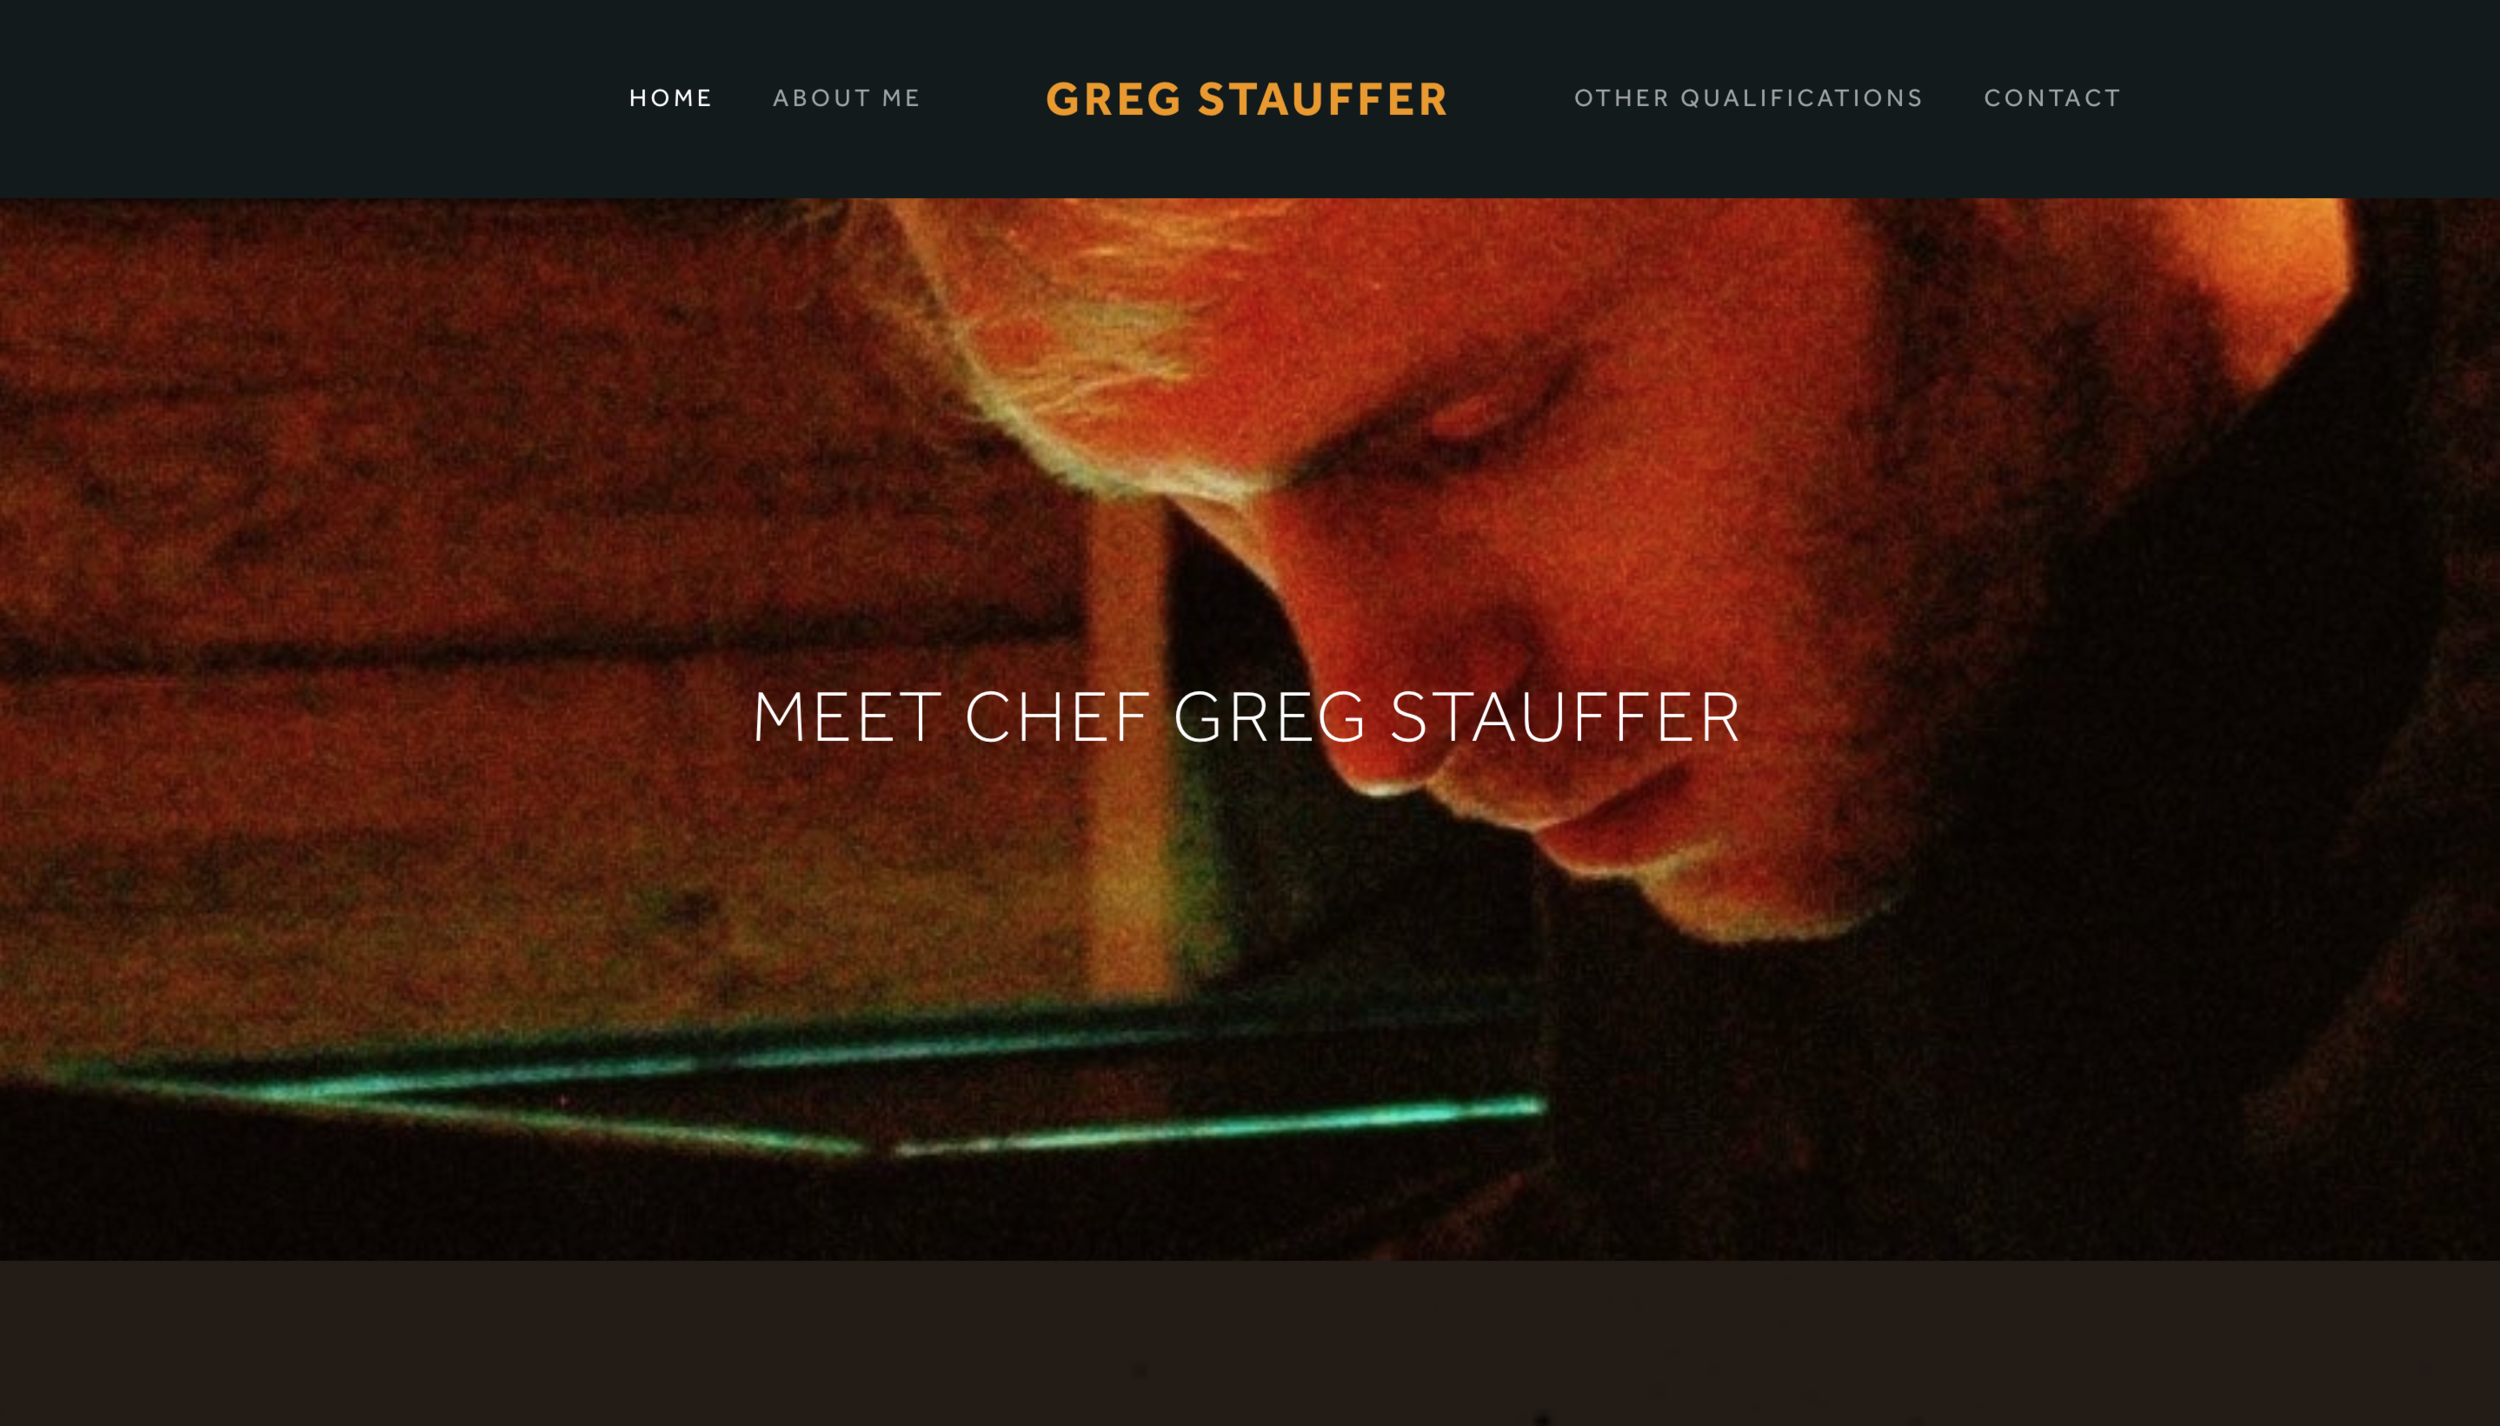 Greg Stauffer